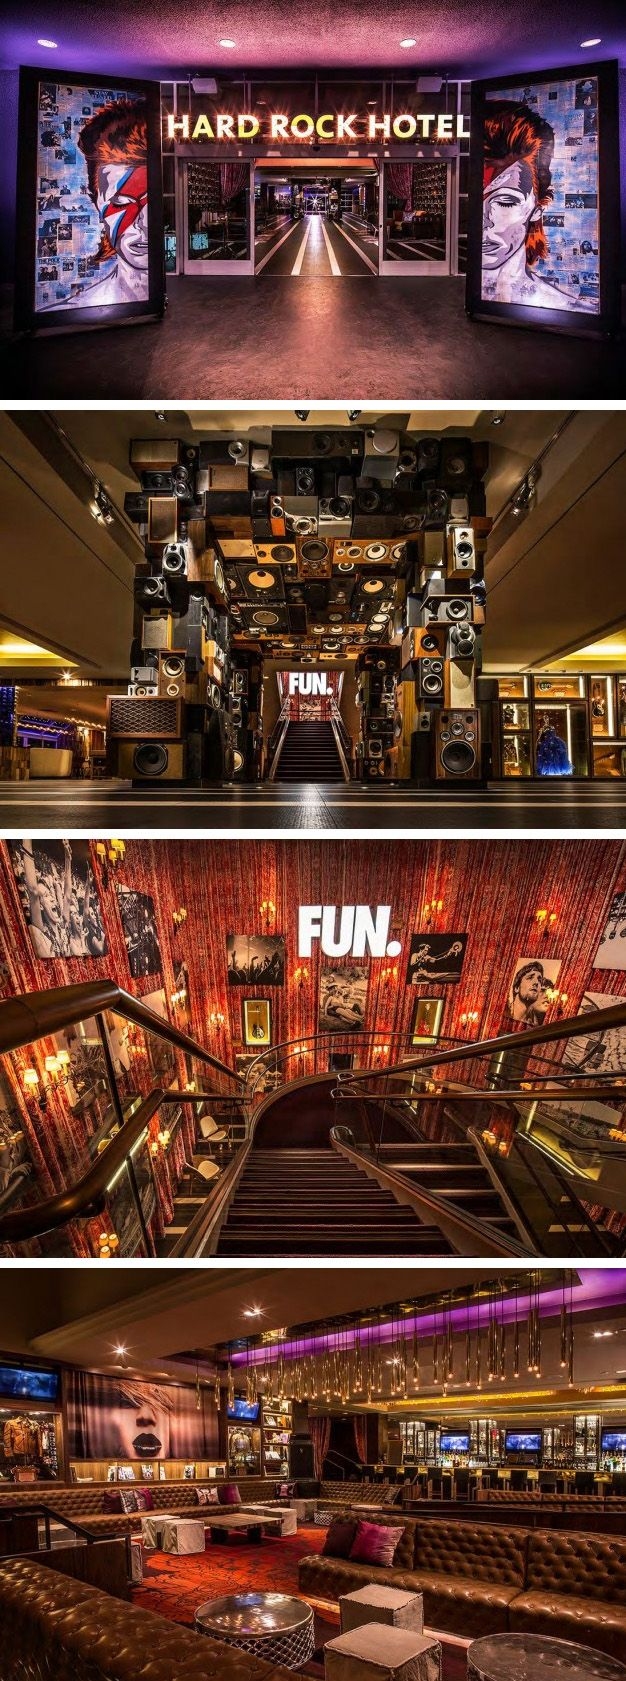 Mister Important Design designed the interiors for the Hard Rock Hotel in Palm Springs, California.